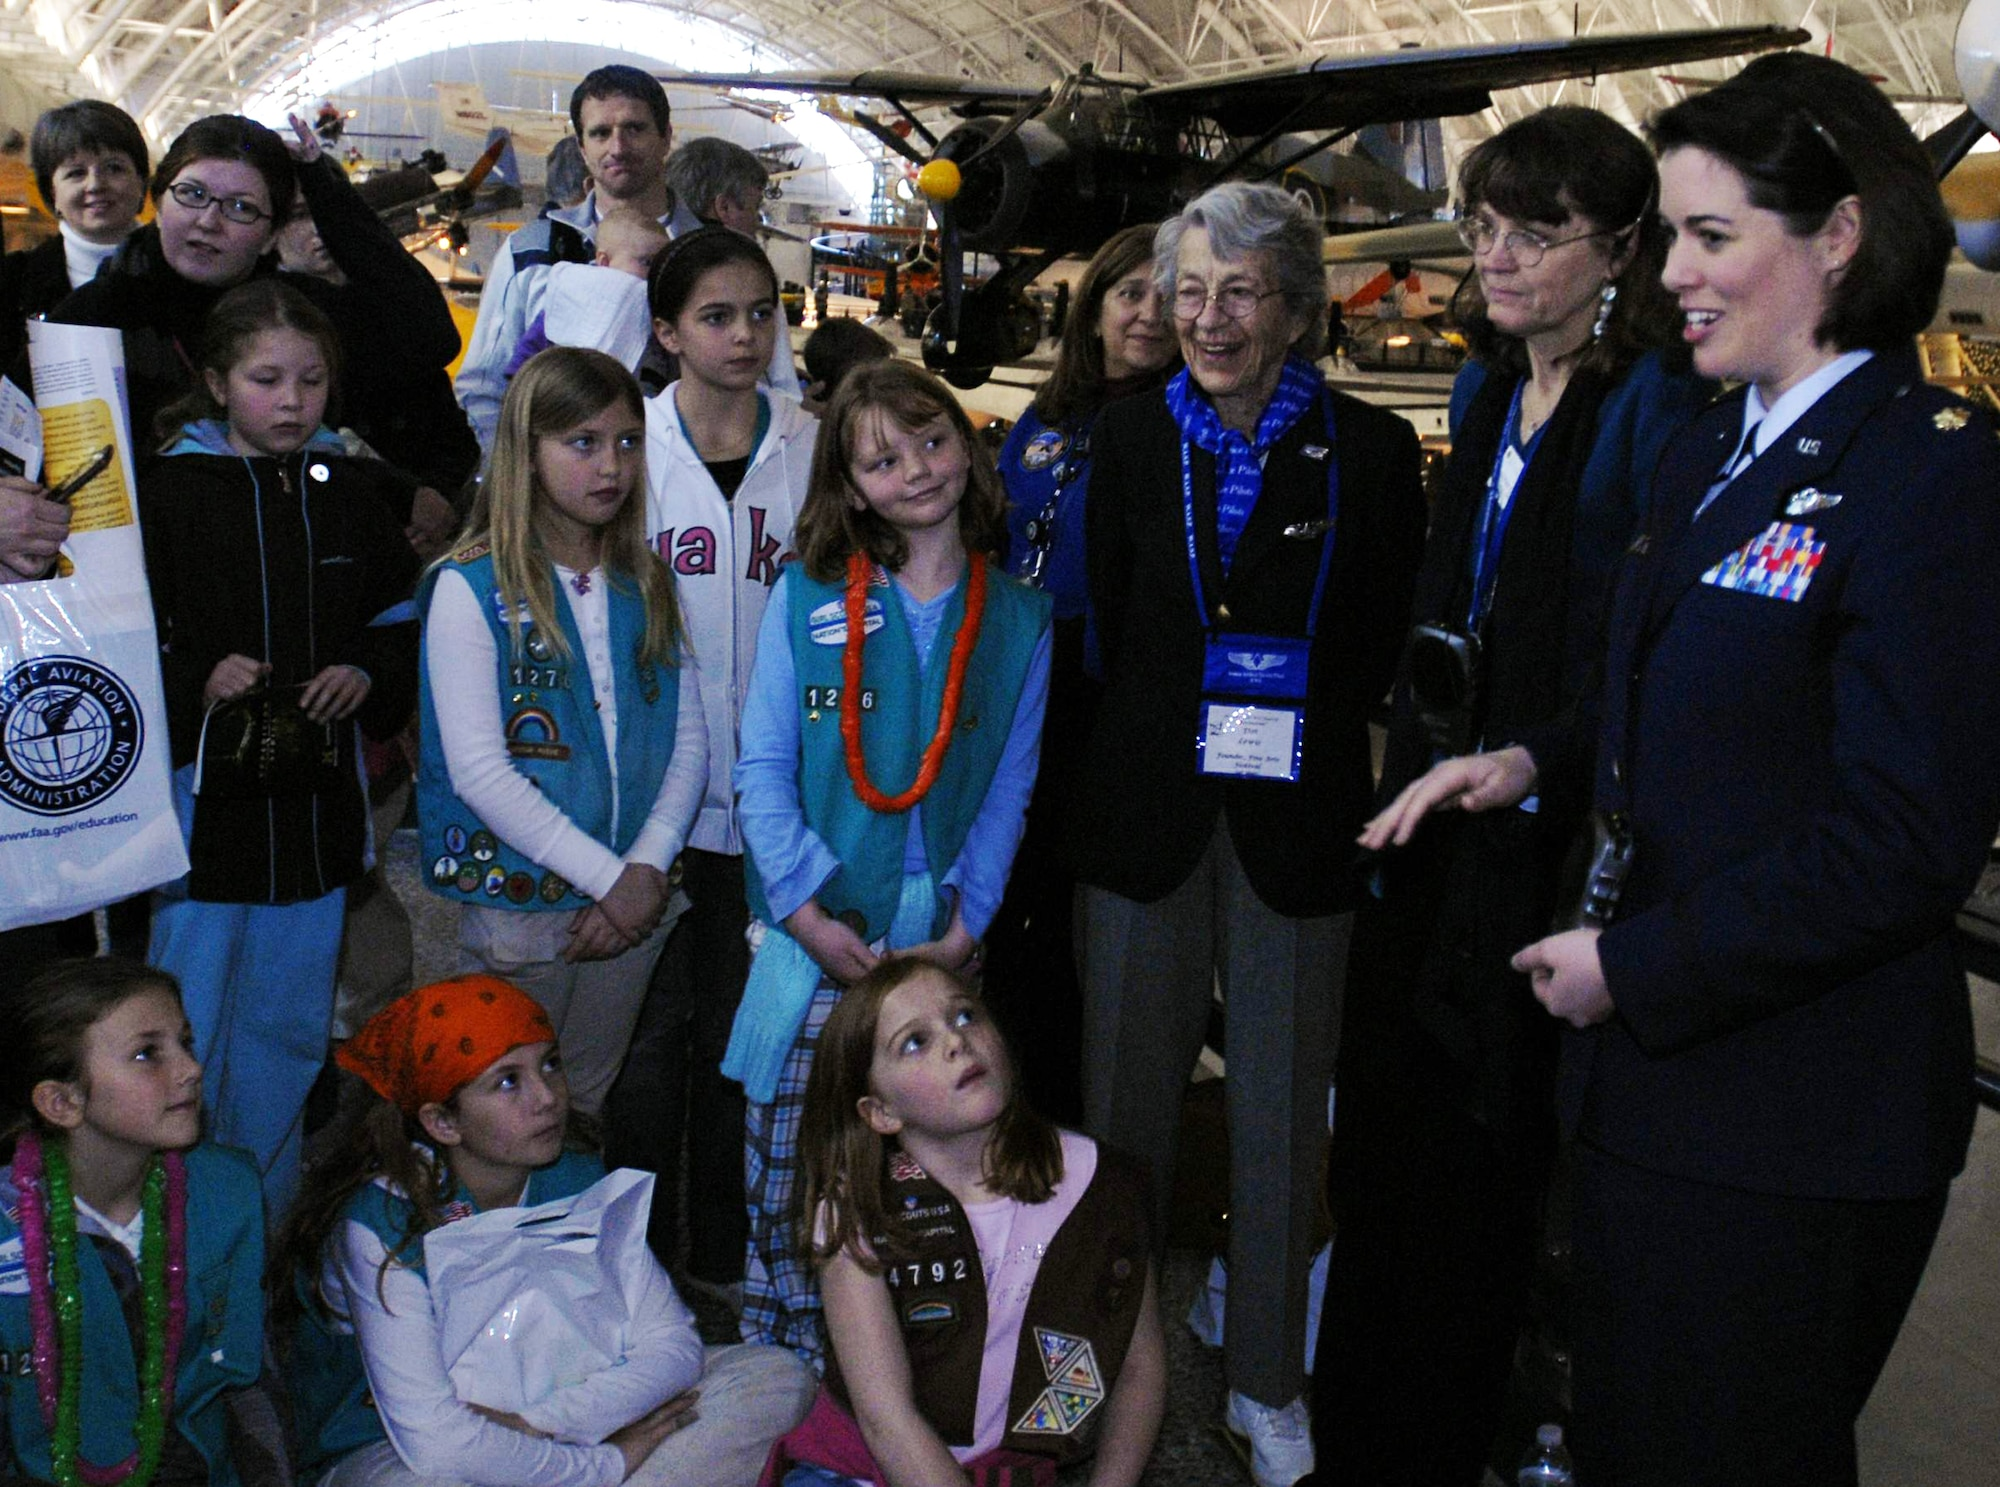 Maj. Nicole Malachowski answers questions at the Women in Aviation and Space Family Day March 14 at the National Air and Space Museum's Hazy Center in Chantilly, Va. The event featured female air and space pioneers, including astronauts, a World War II Women Airforce Service Pilot and several aerospace experts at exhibit booths where visitors could learn hands-on about science and flying. Major Malachowski was the first female Thunderbirds pilot. (U.S. Air Force photo/Staff Sgt. J.G. Buzanowski)